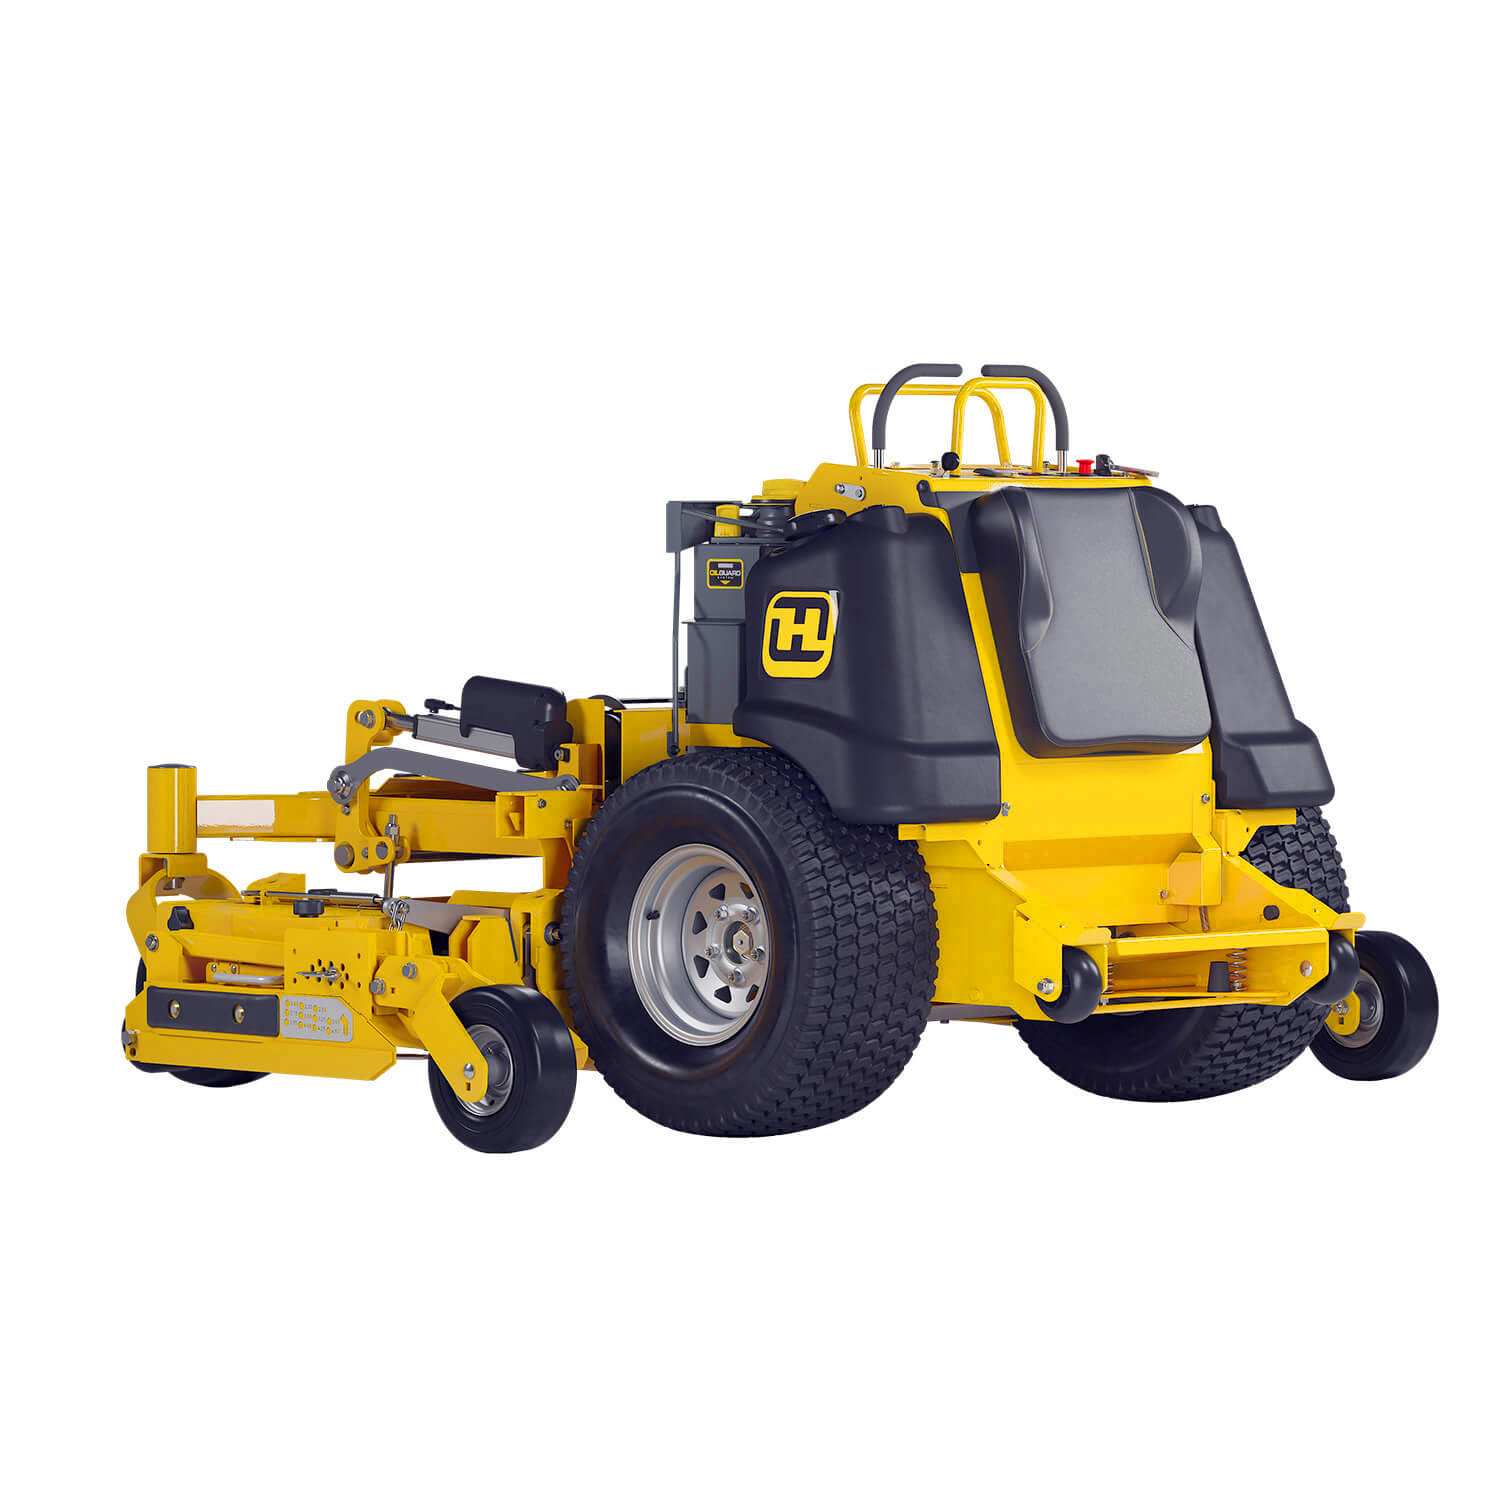 Image of the rear three quarters of a yellow stand-on mower